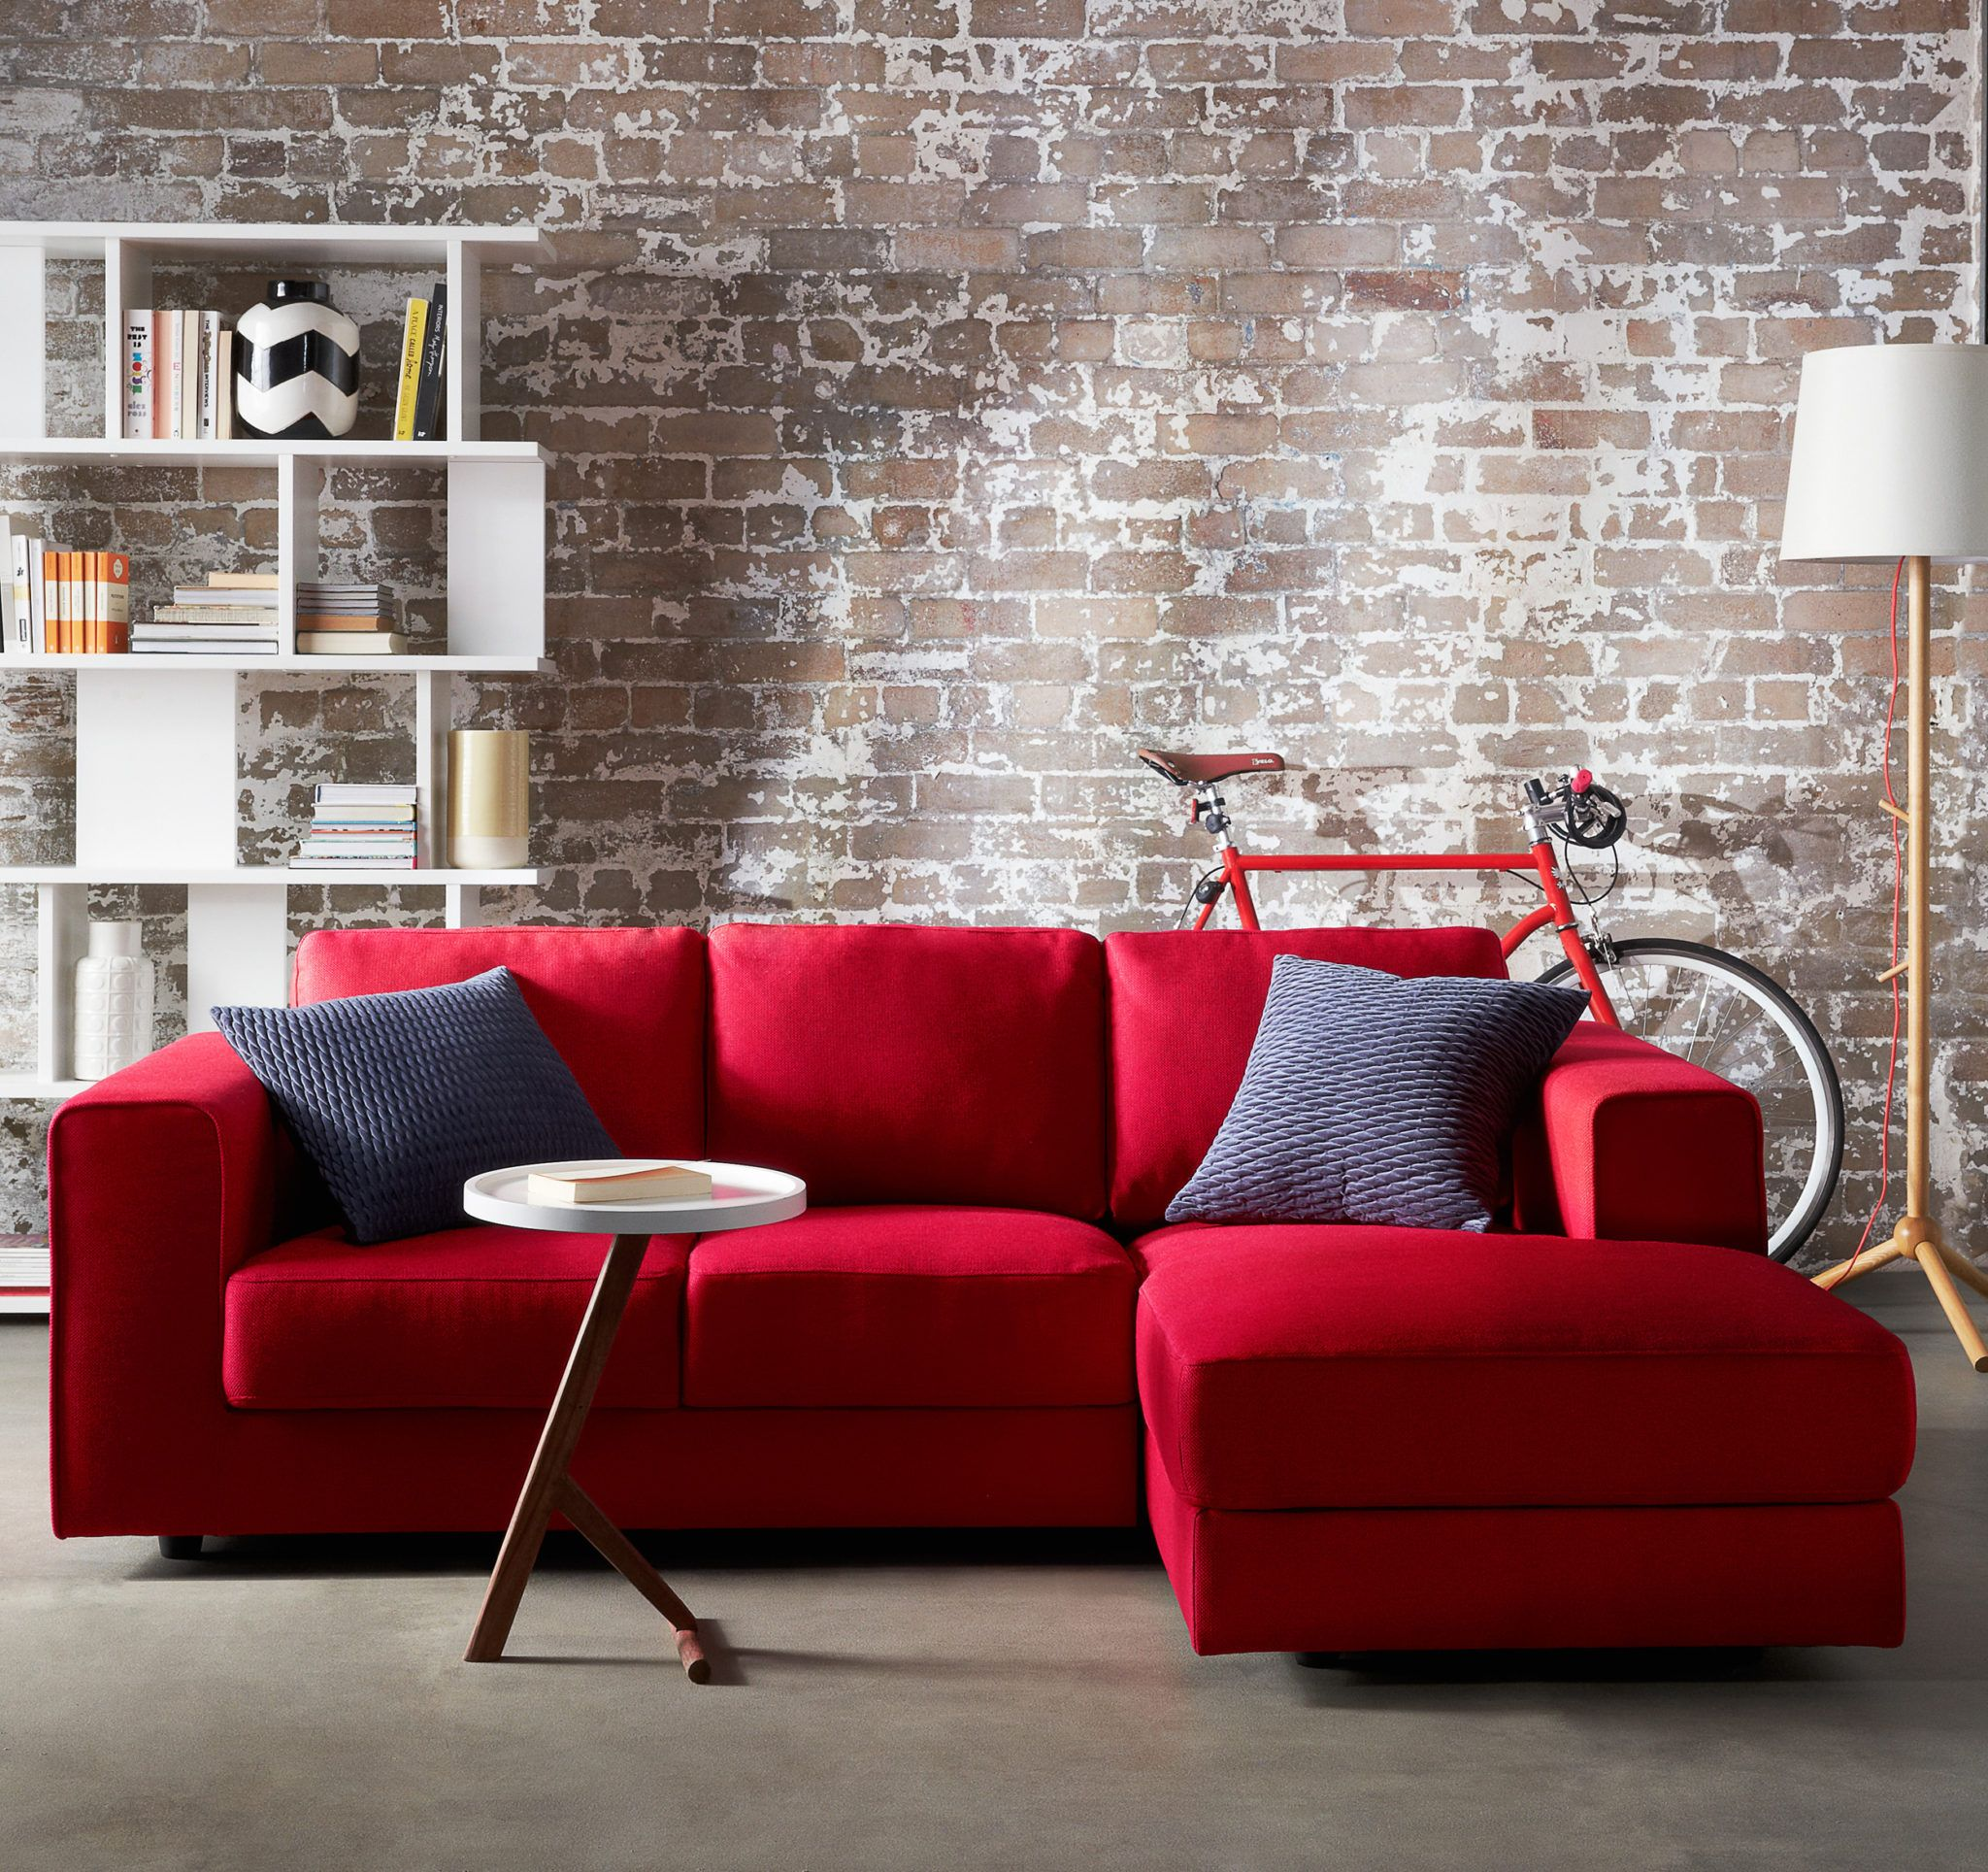 Buy One Get One Free On Freedom Sofas Red Couch Living